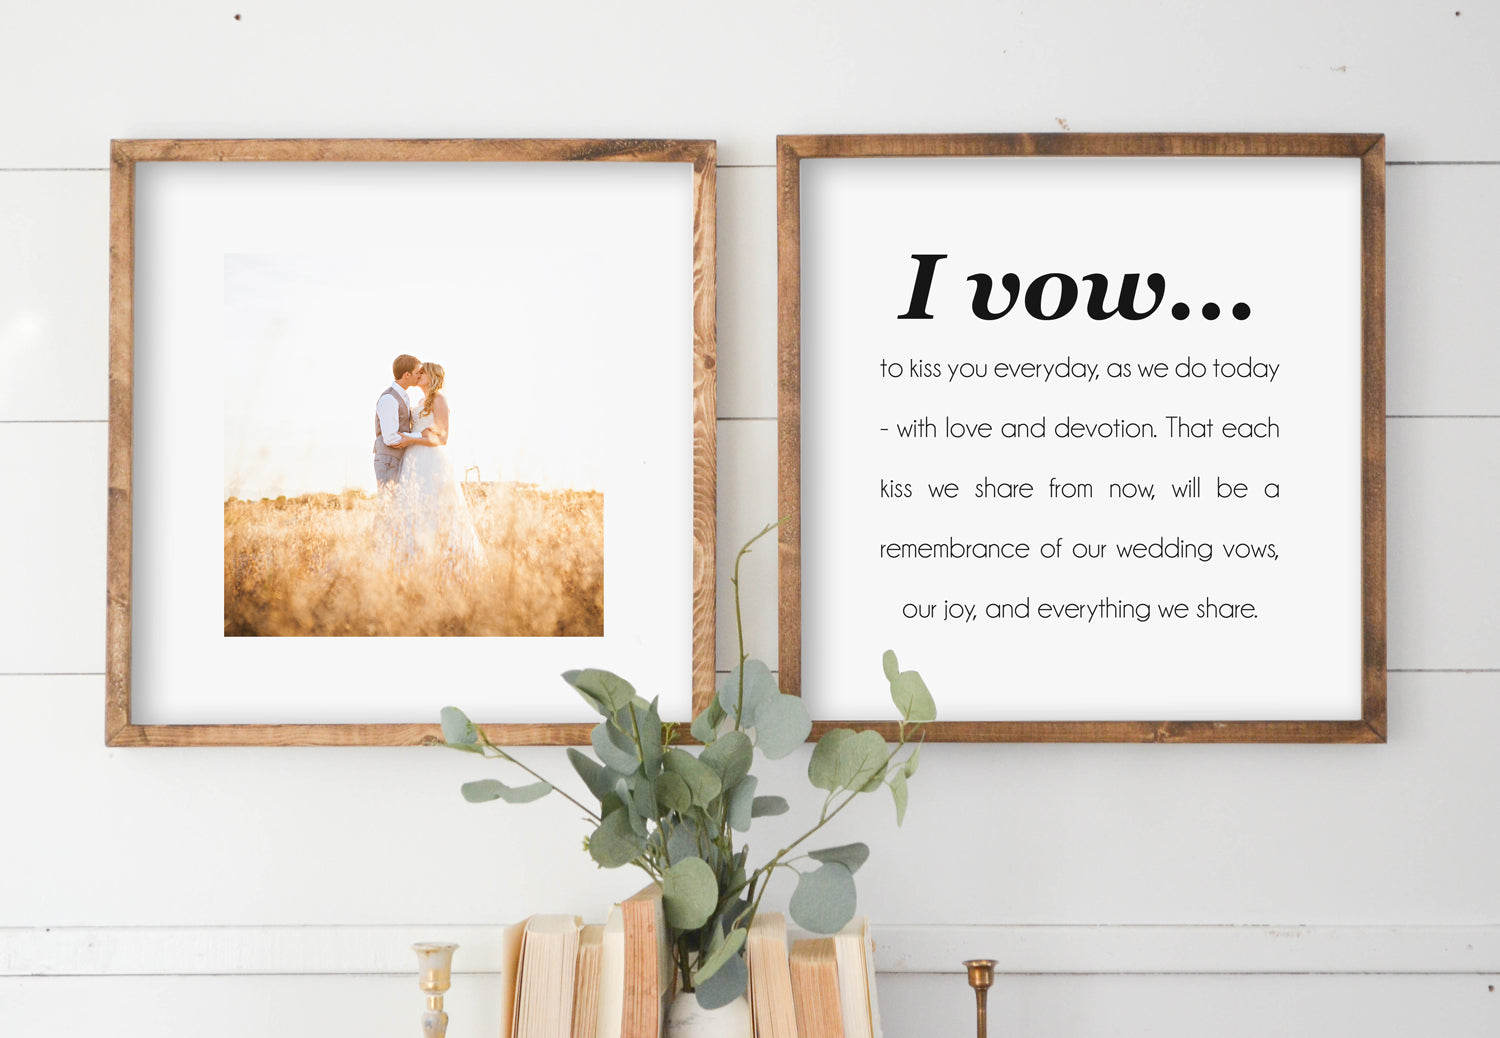 I Vow Custom Wedding Photo Wood Framed Sign